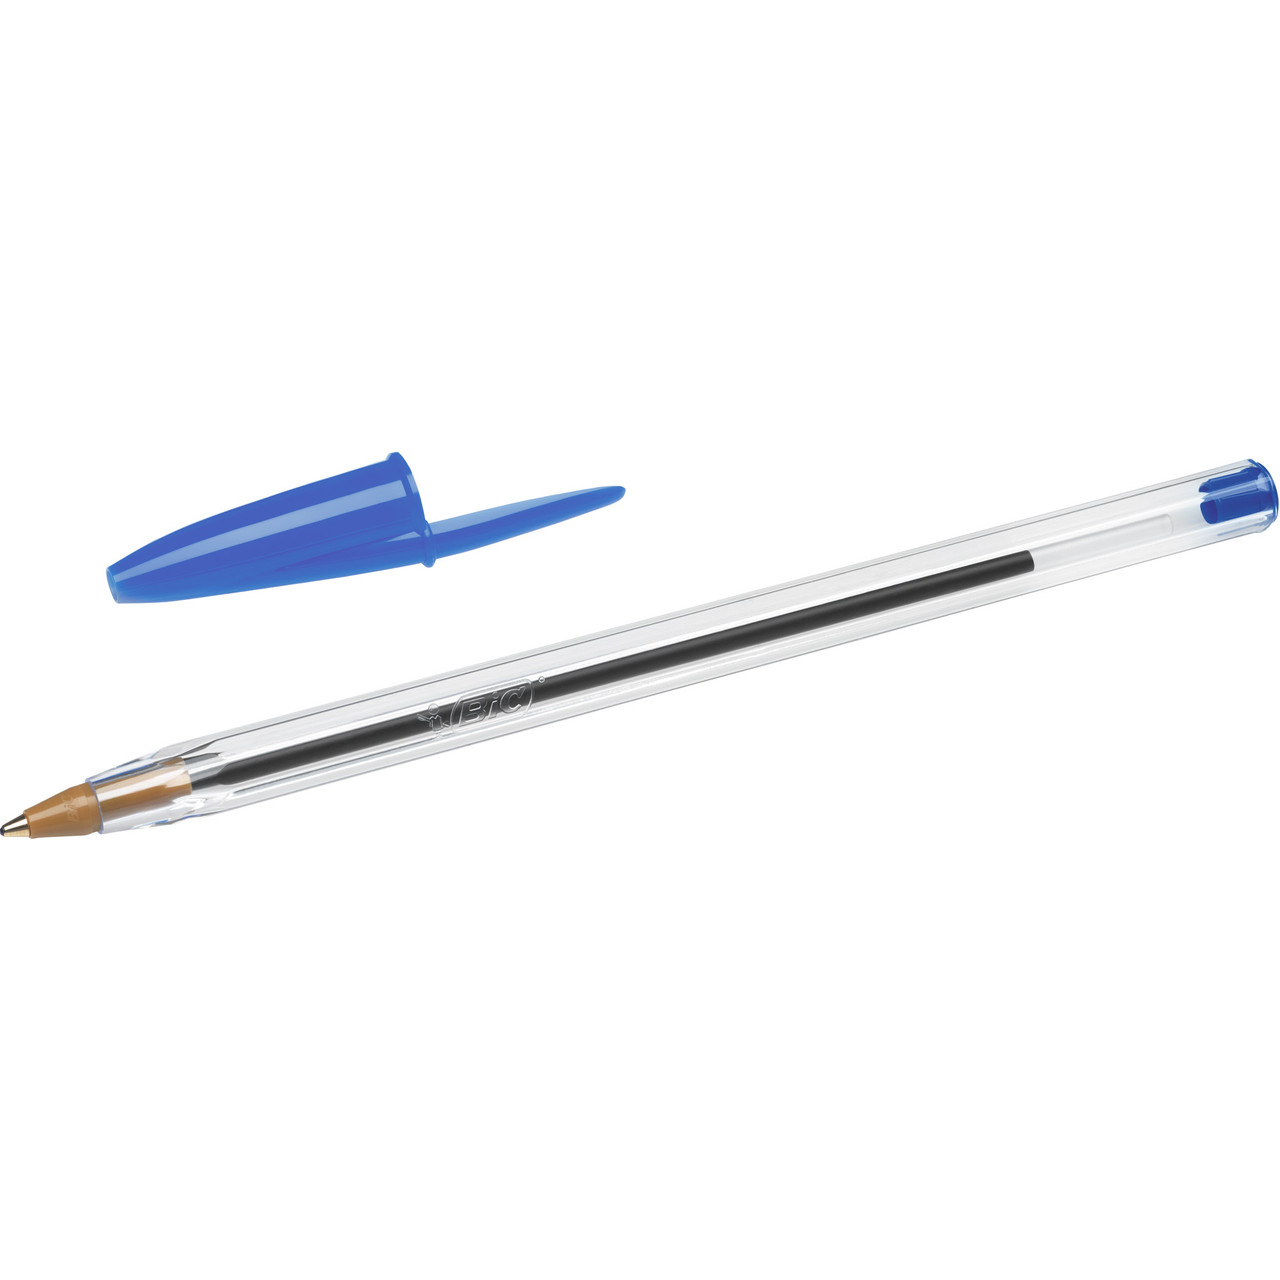 BIC Cristal Xtra Smooth Ball Pen, Medium Point (1.0mm), Blue, 10 Count  - *Ships from Miami*